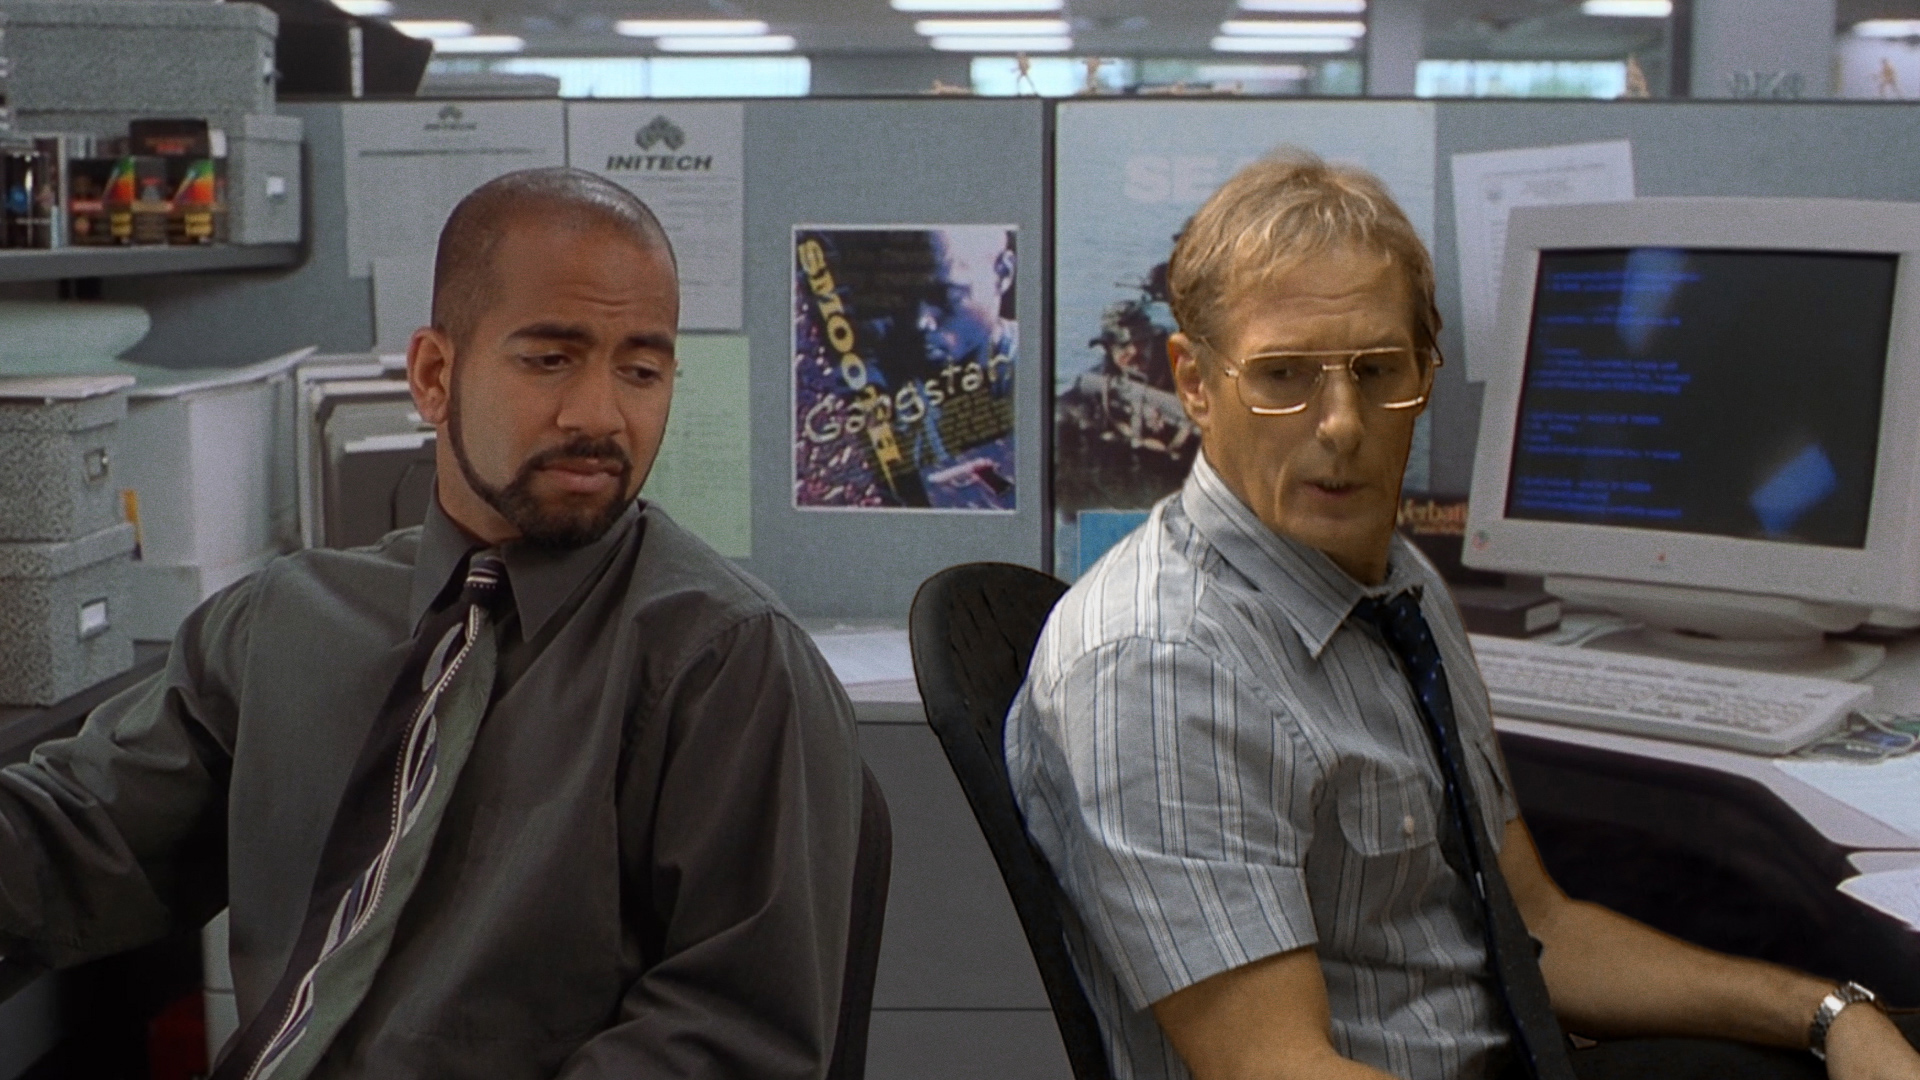 pics of office space. Pics Of Office Space